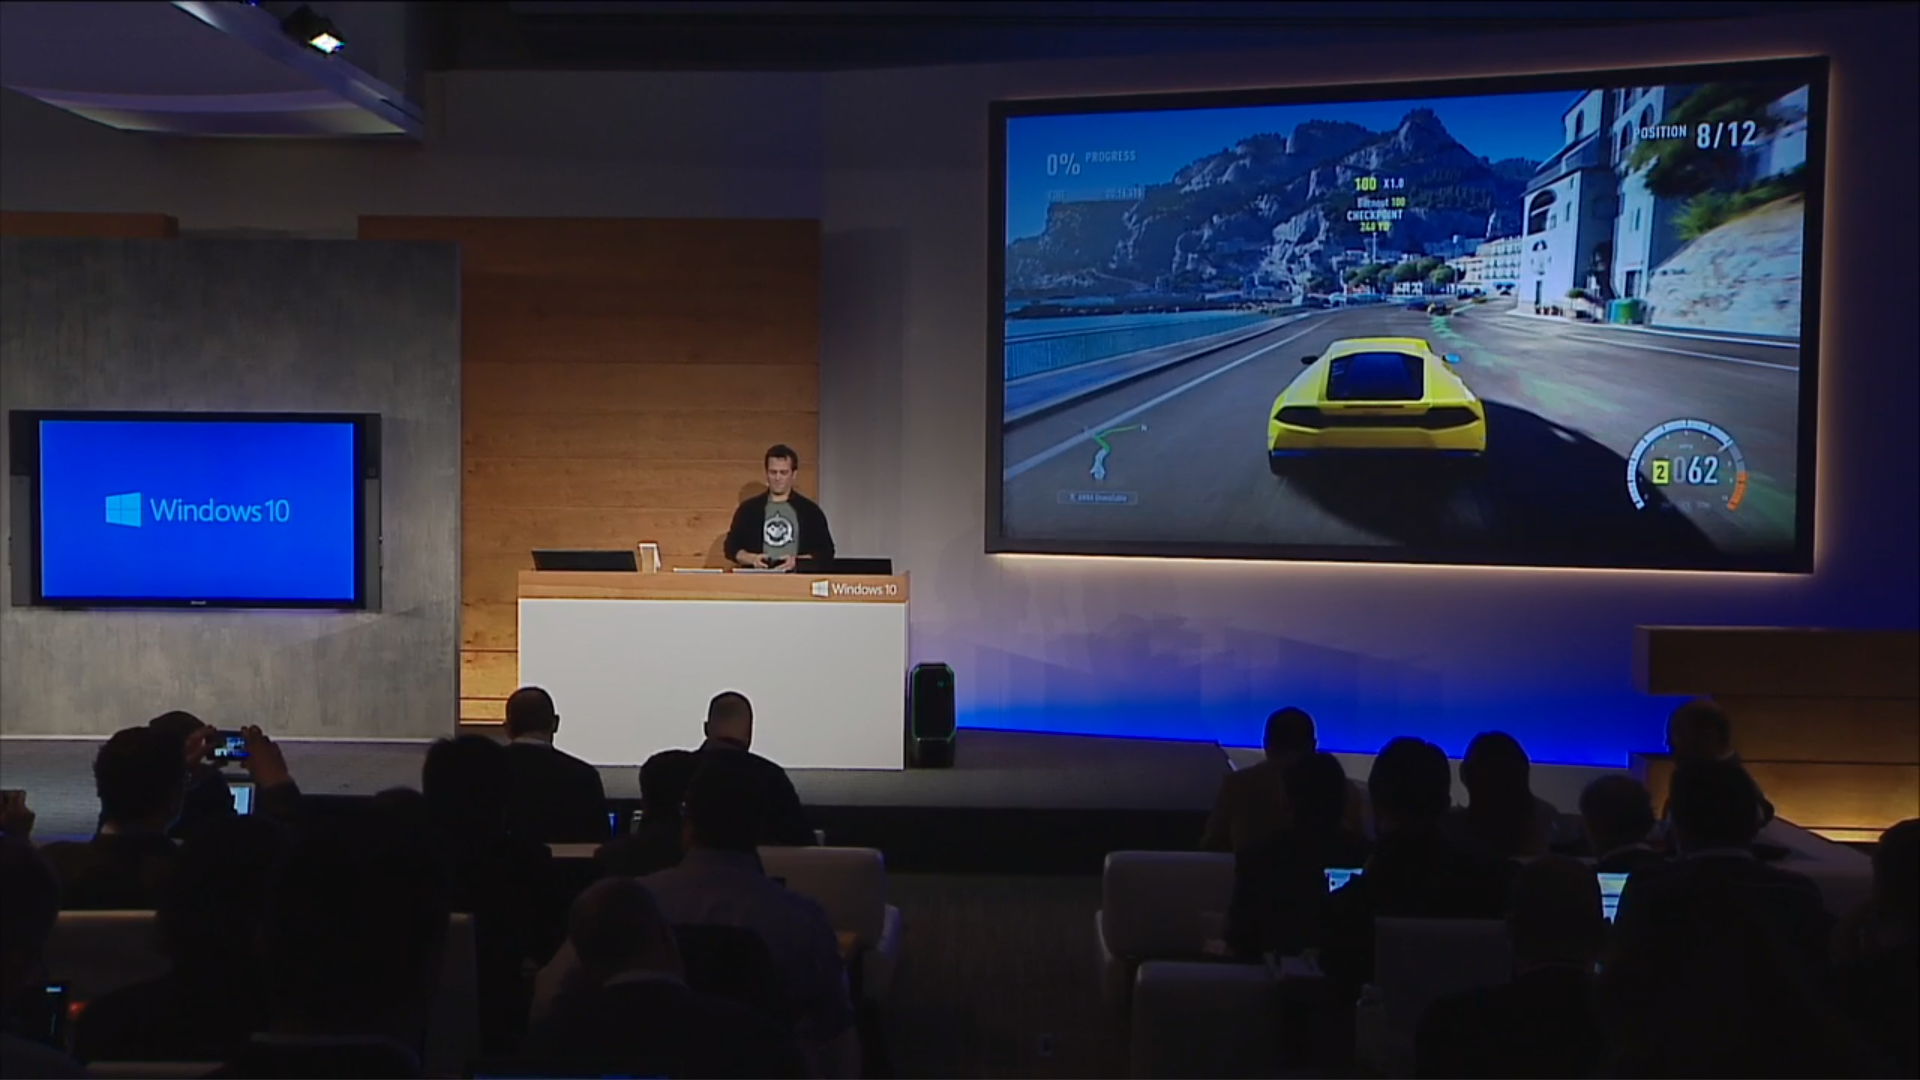 windows 10 evento 220115